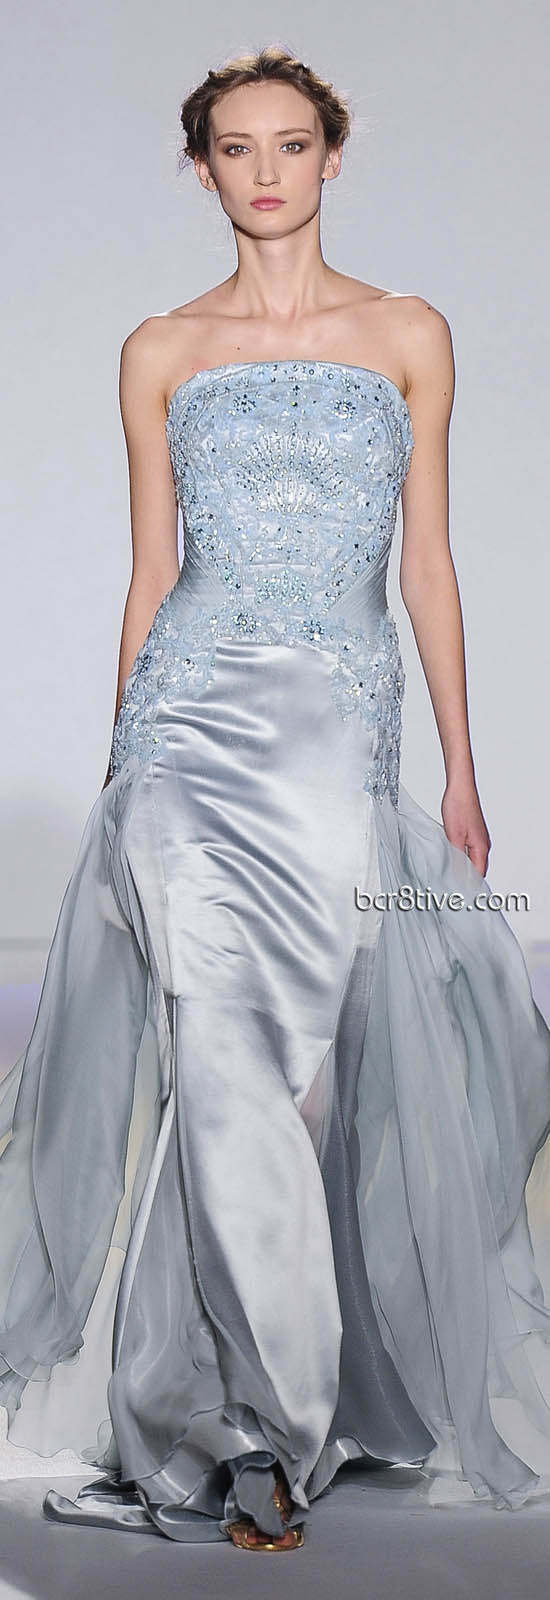 Zuhair Murad Spring Summer 2013 Haute Couture Collection